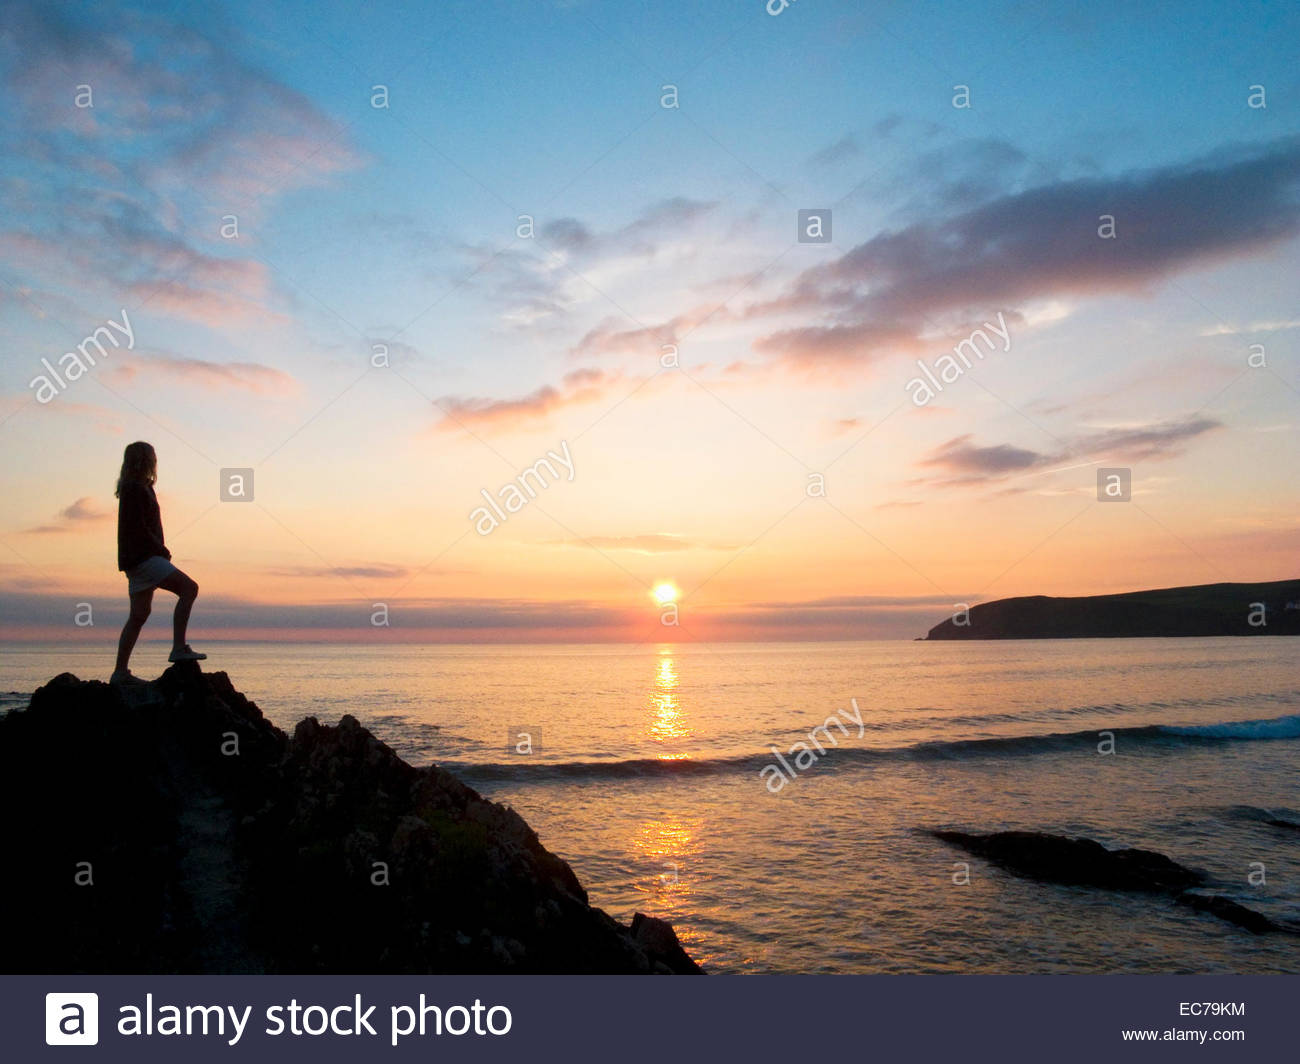 Silhouette of woman looking out to sea at sunset - Stock Image